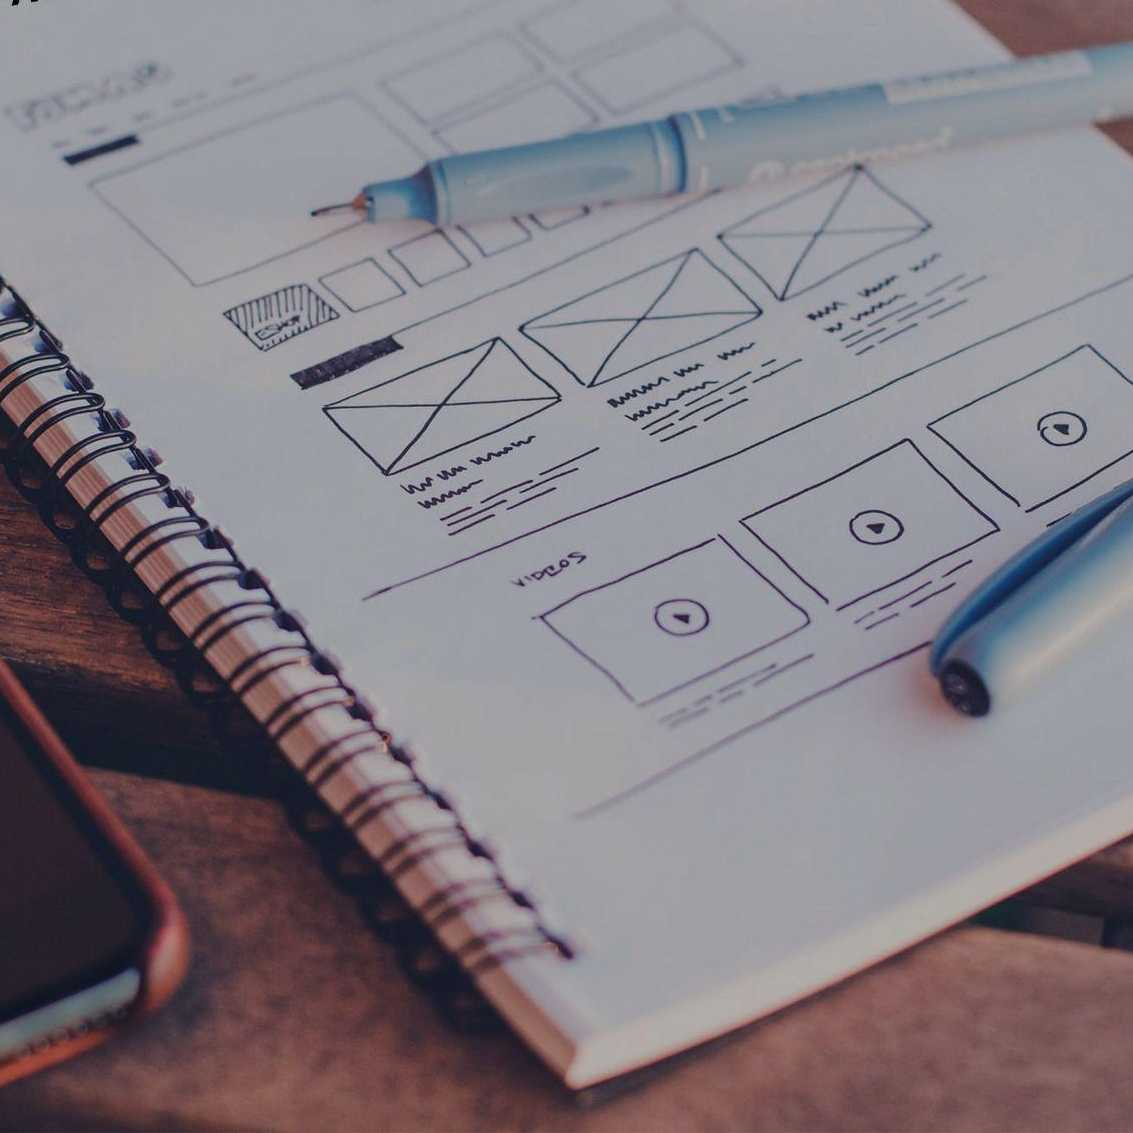 Learn All About User Experience: Design Thinking for Innovation